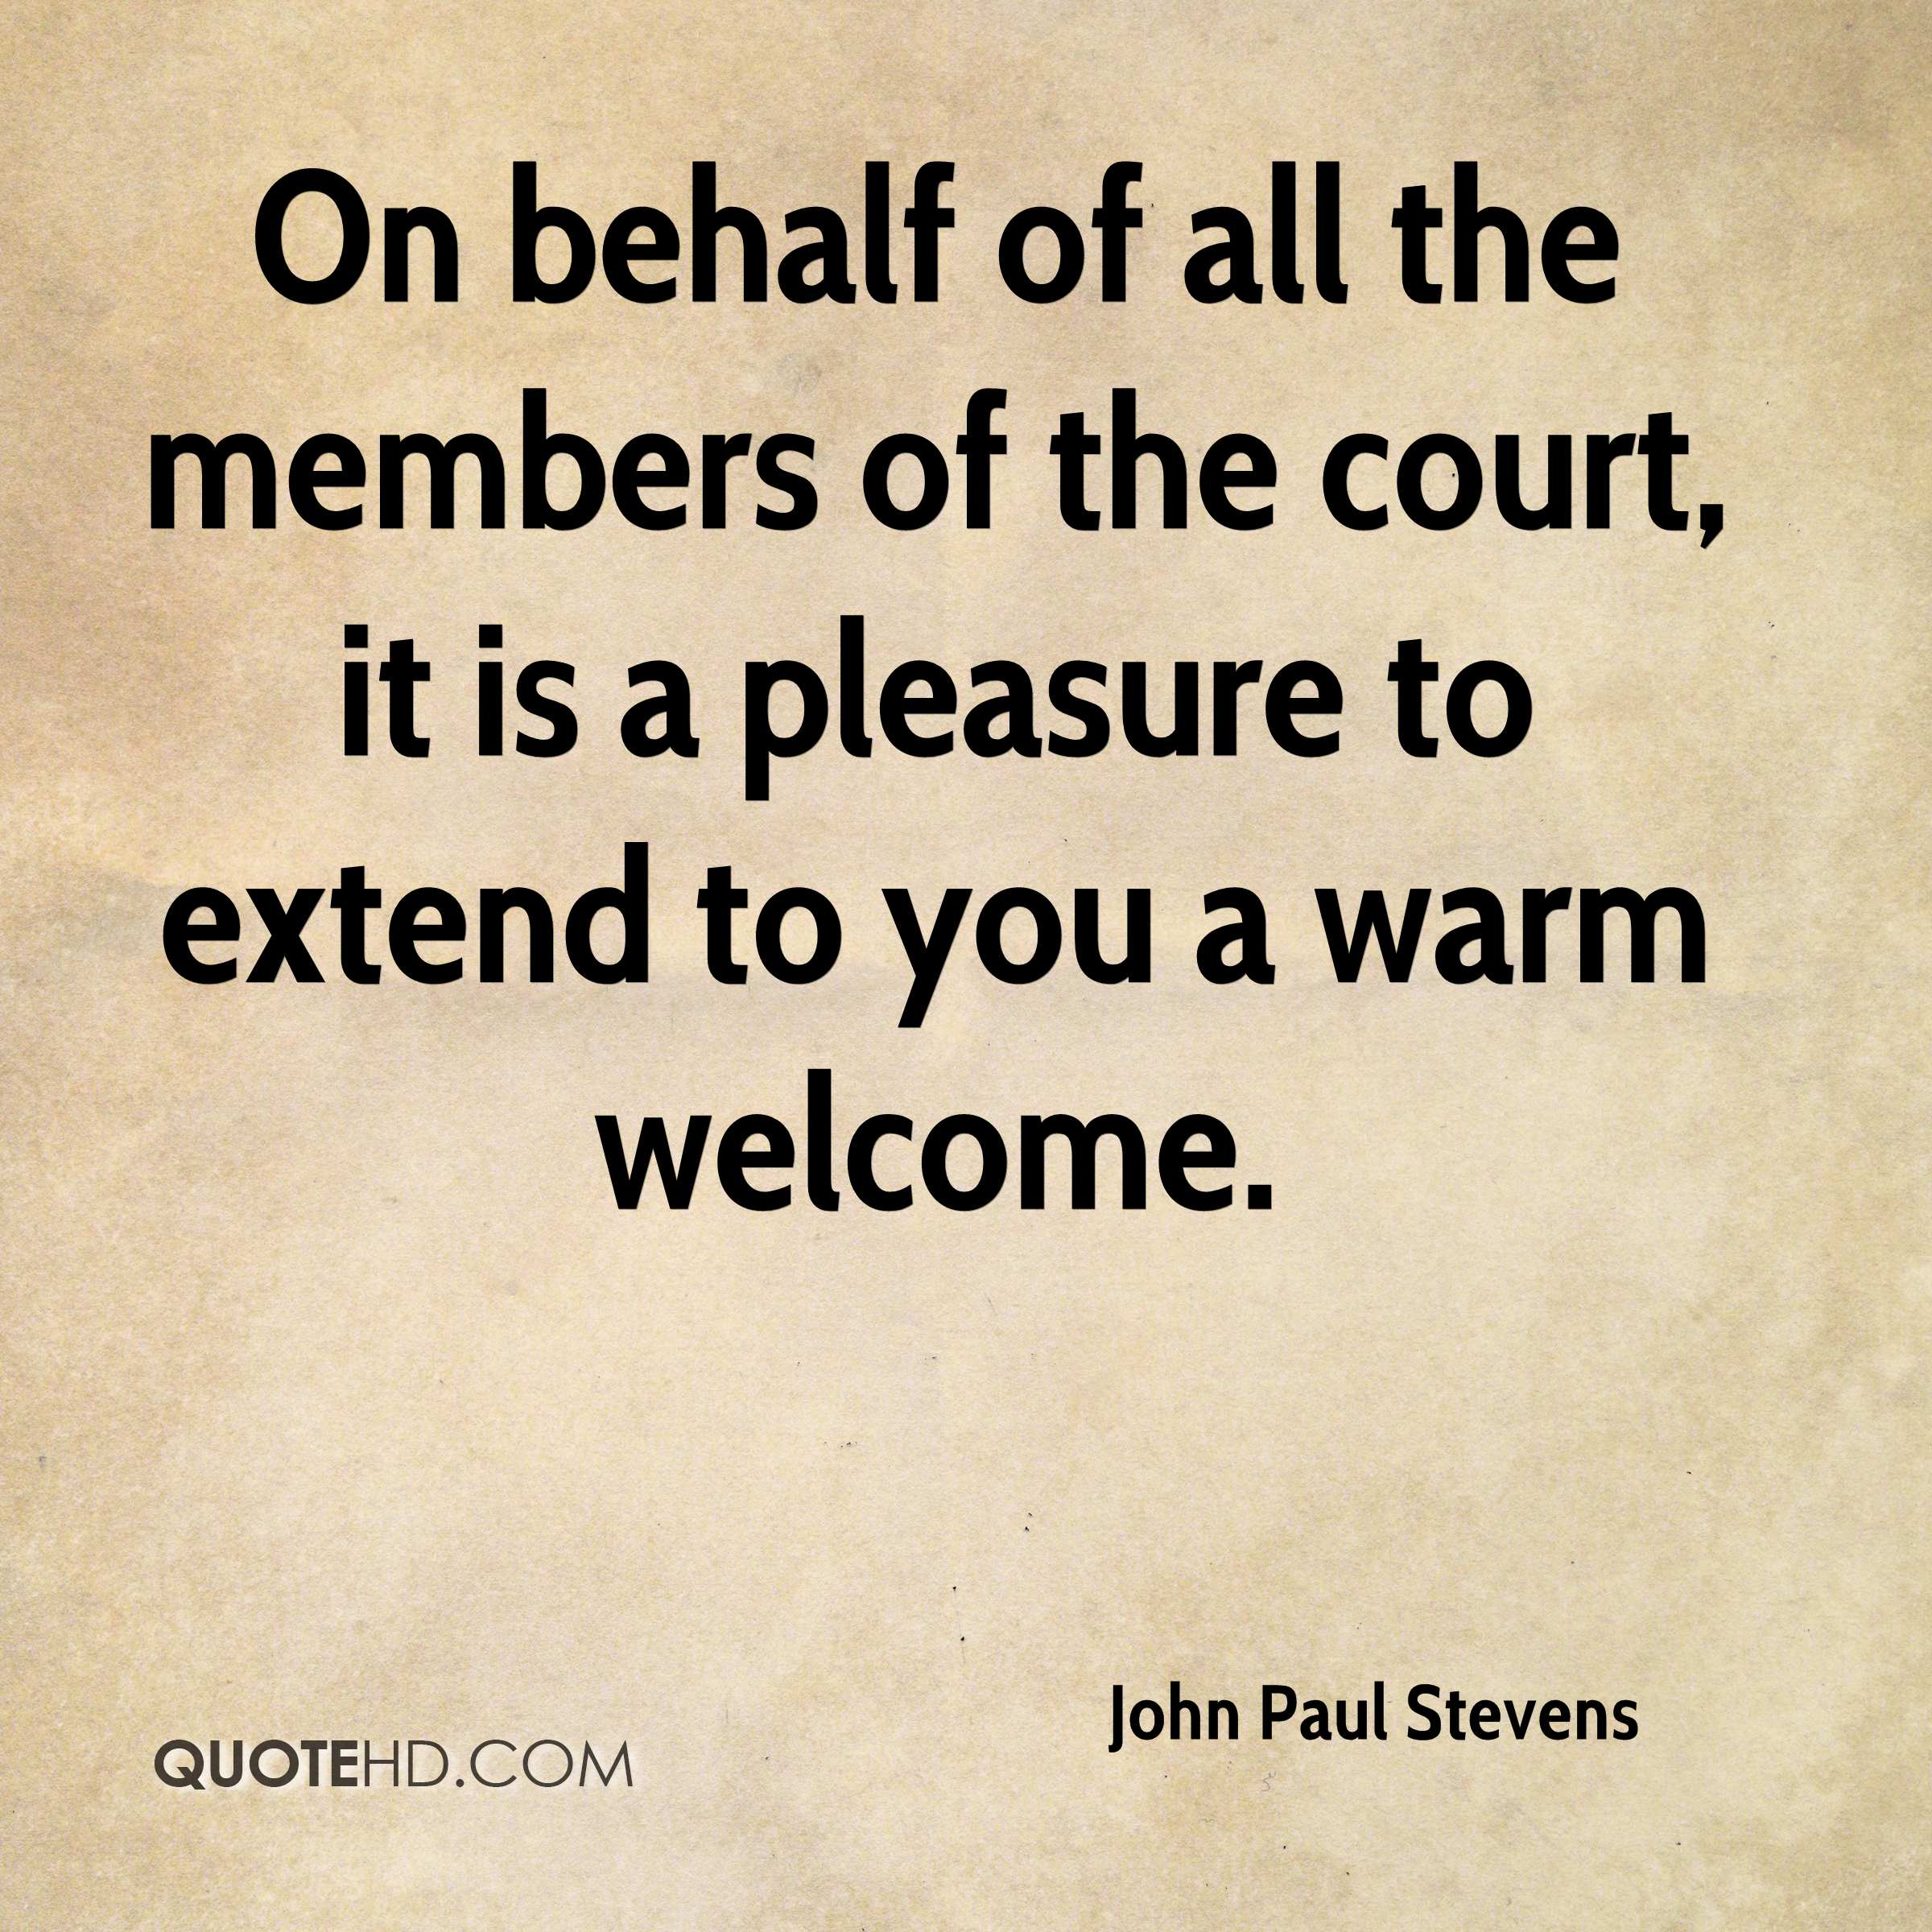 On behalf of all the members of the court, it is a pleasure to extend to you a warm welcome.